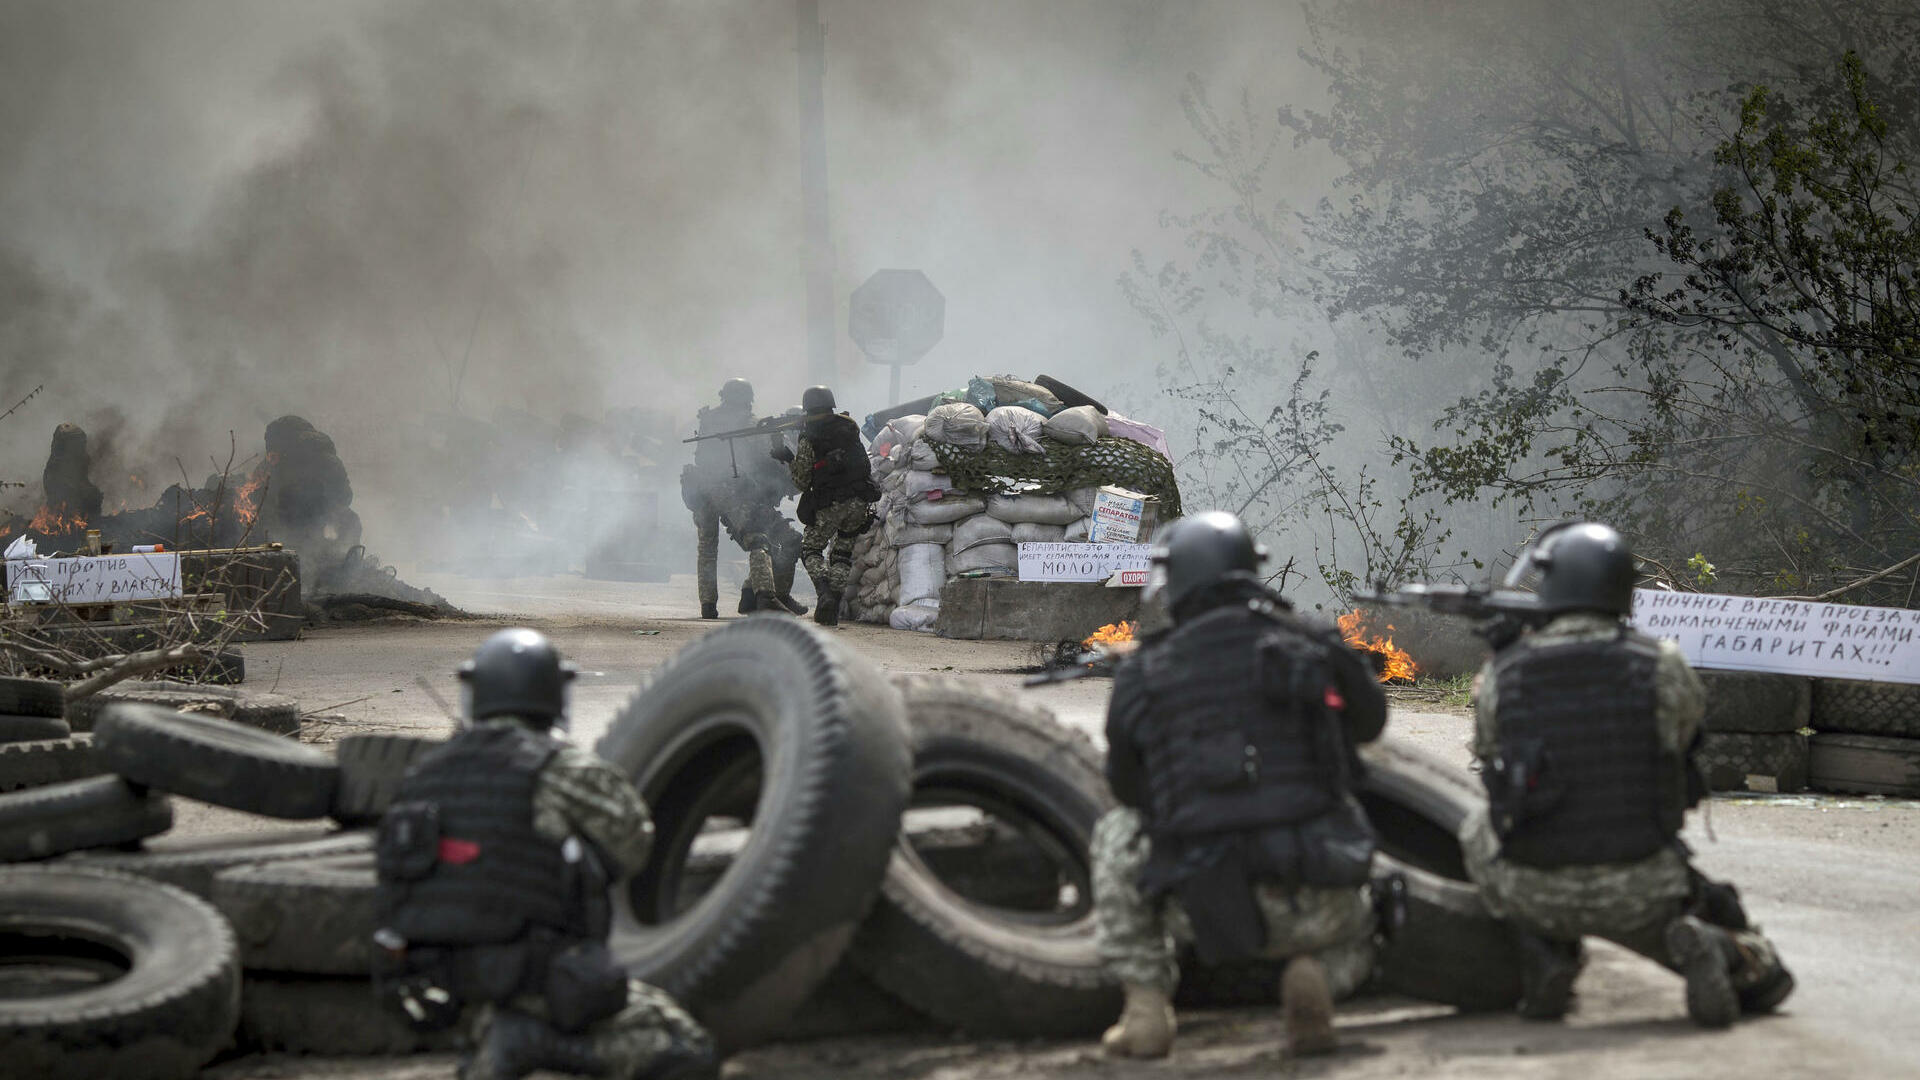 Beginn der Anti-Terror-Operation in Slovyansk, Ukraine Quelle: dpa